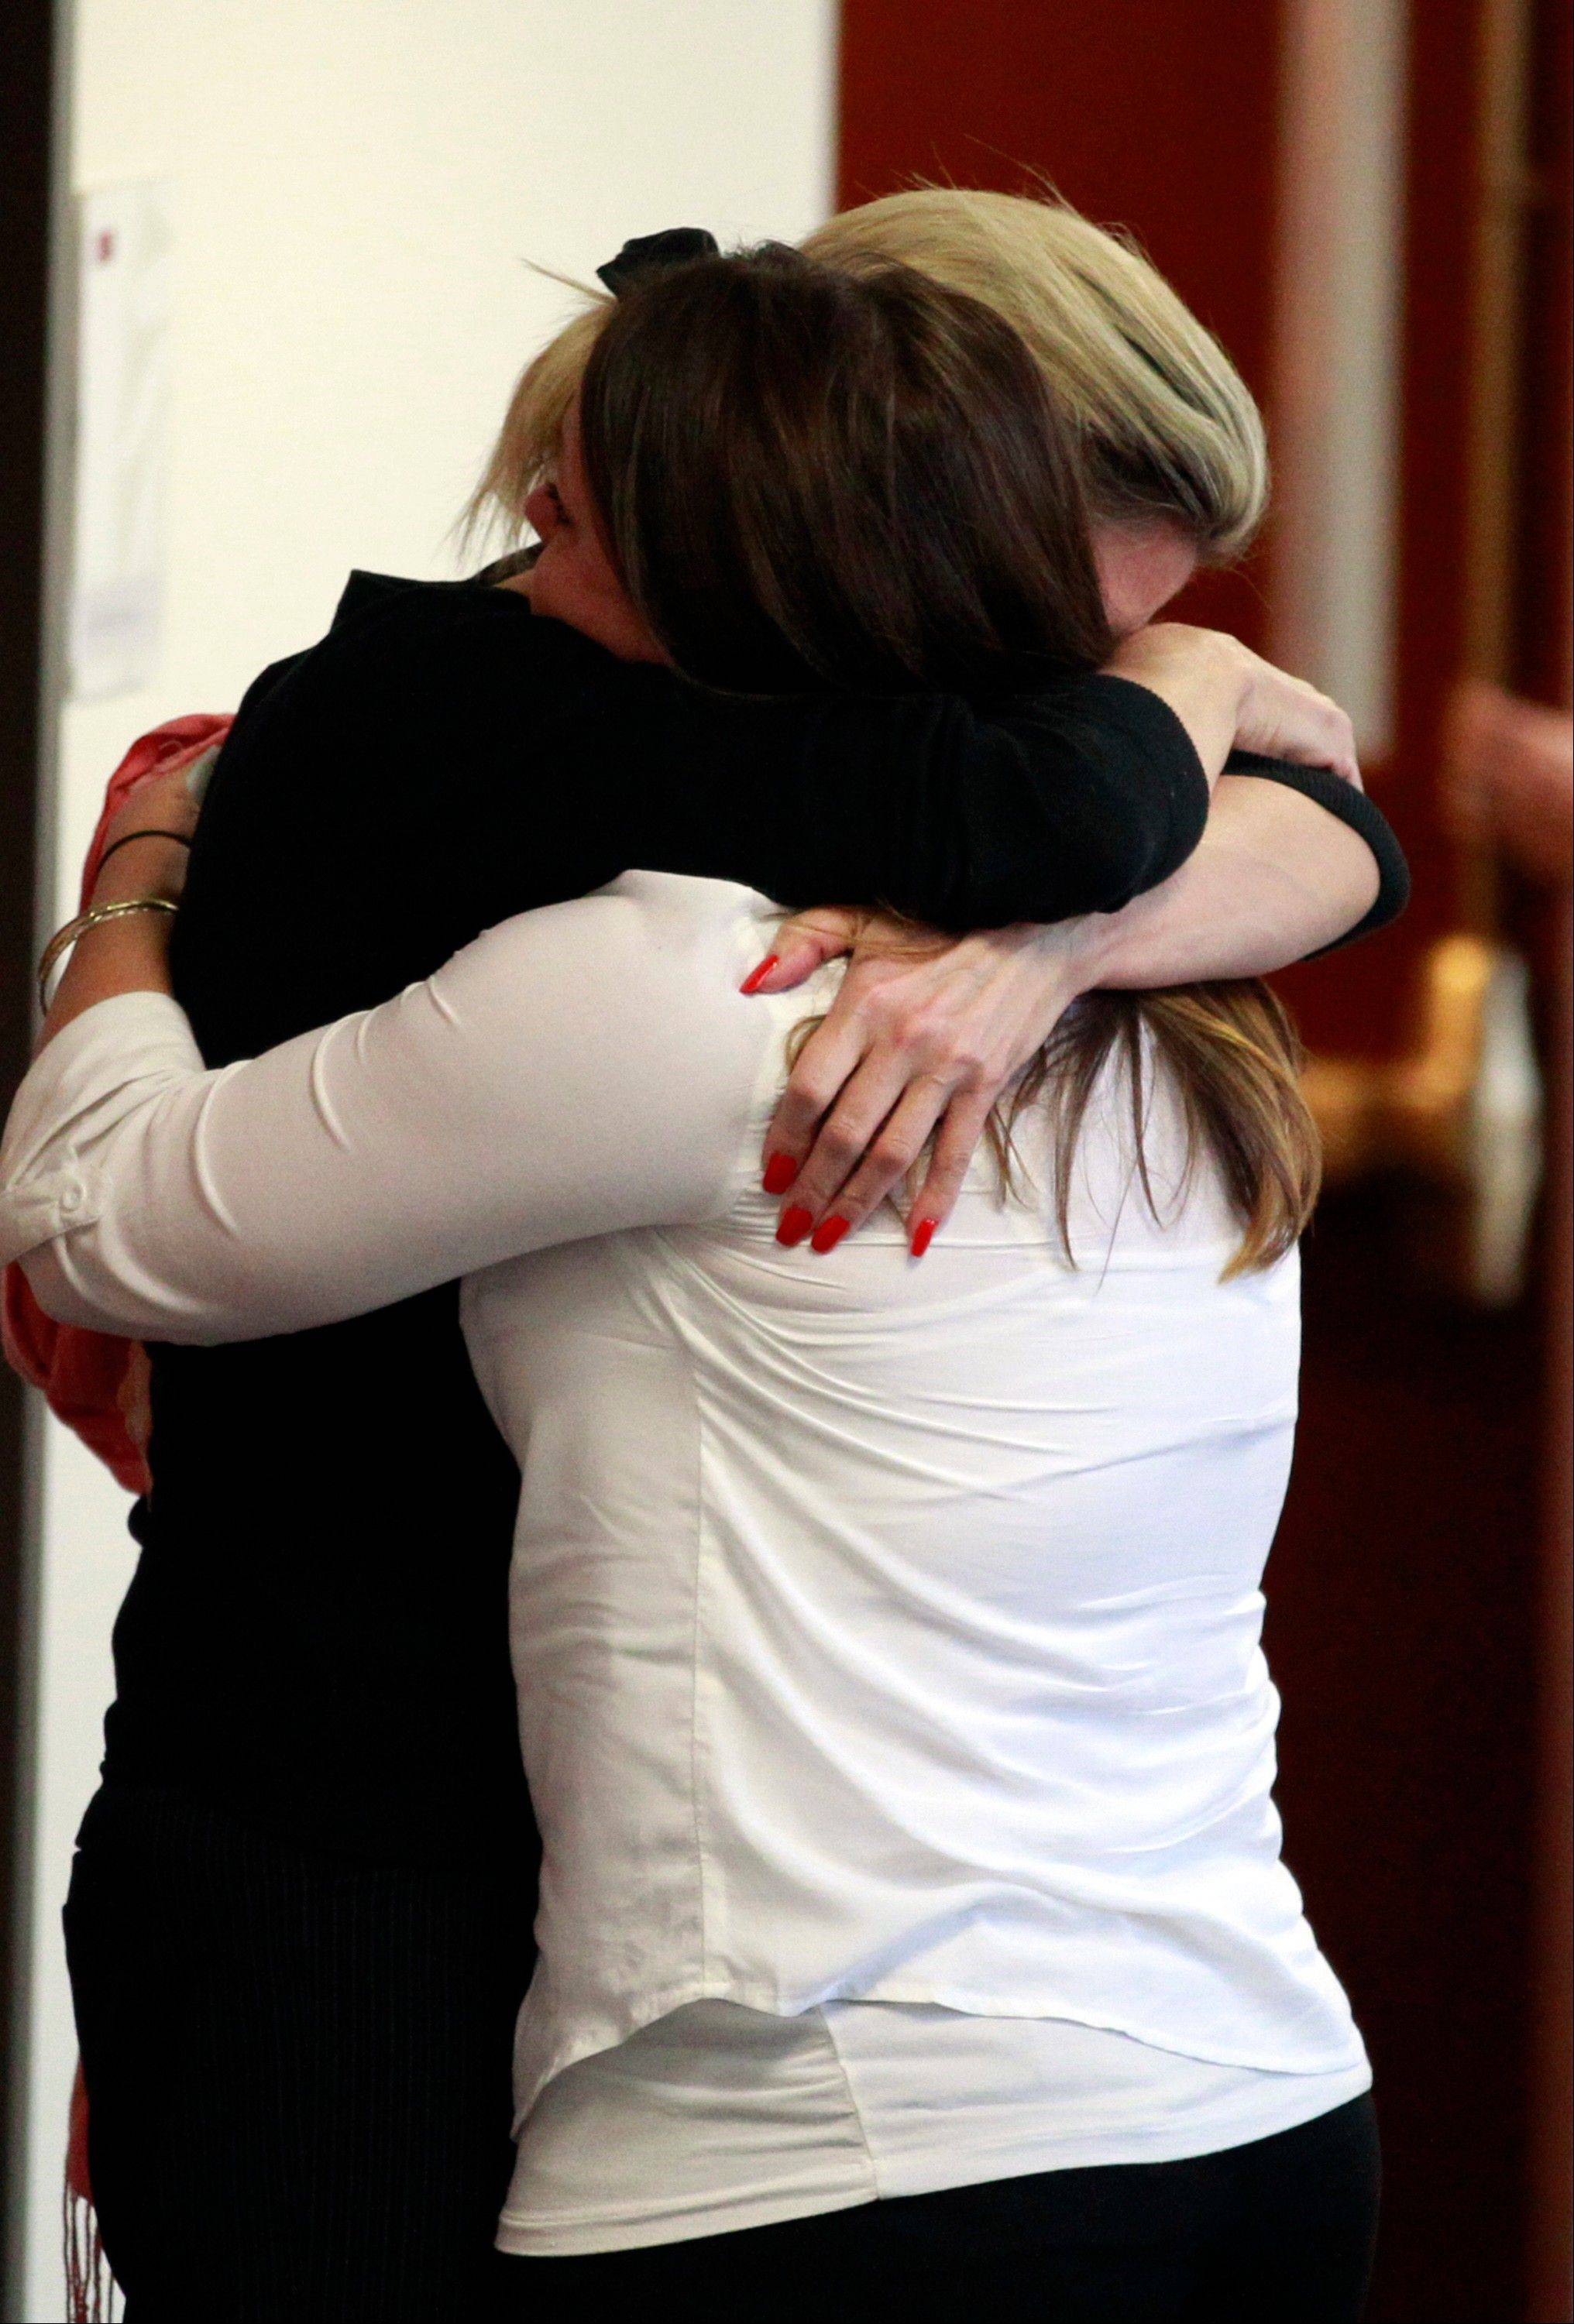 Unidentified women embrace outside of the courtroom in the case of Aurora theater shooting suspect James Holmes in Centennial, Colo., on Monday after hearing that the prosecution will seek the death penalty in the case against Holmes.